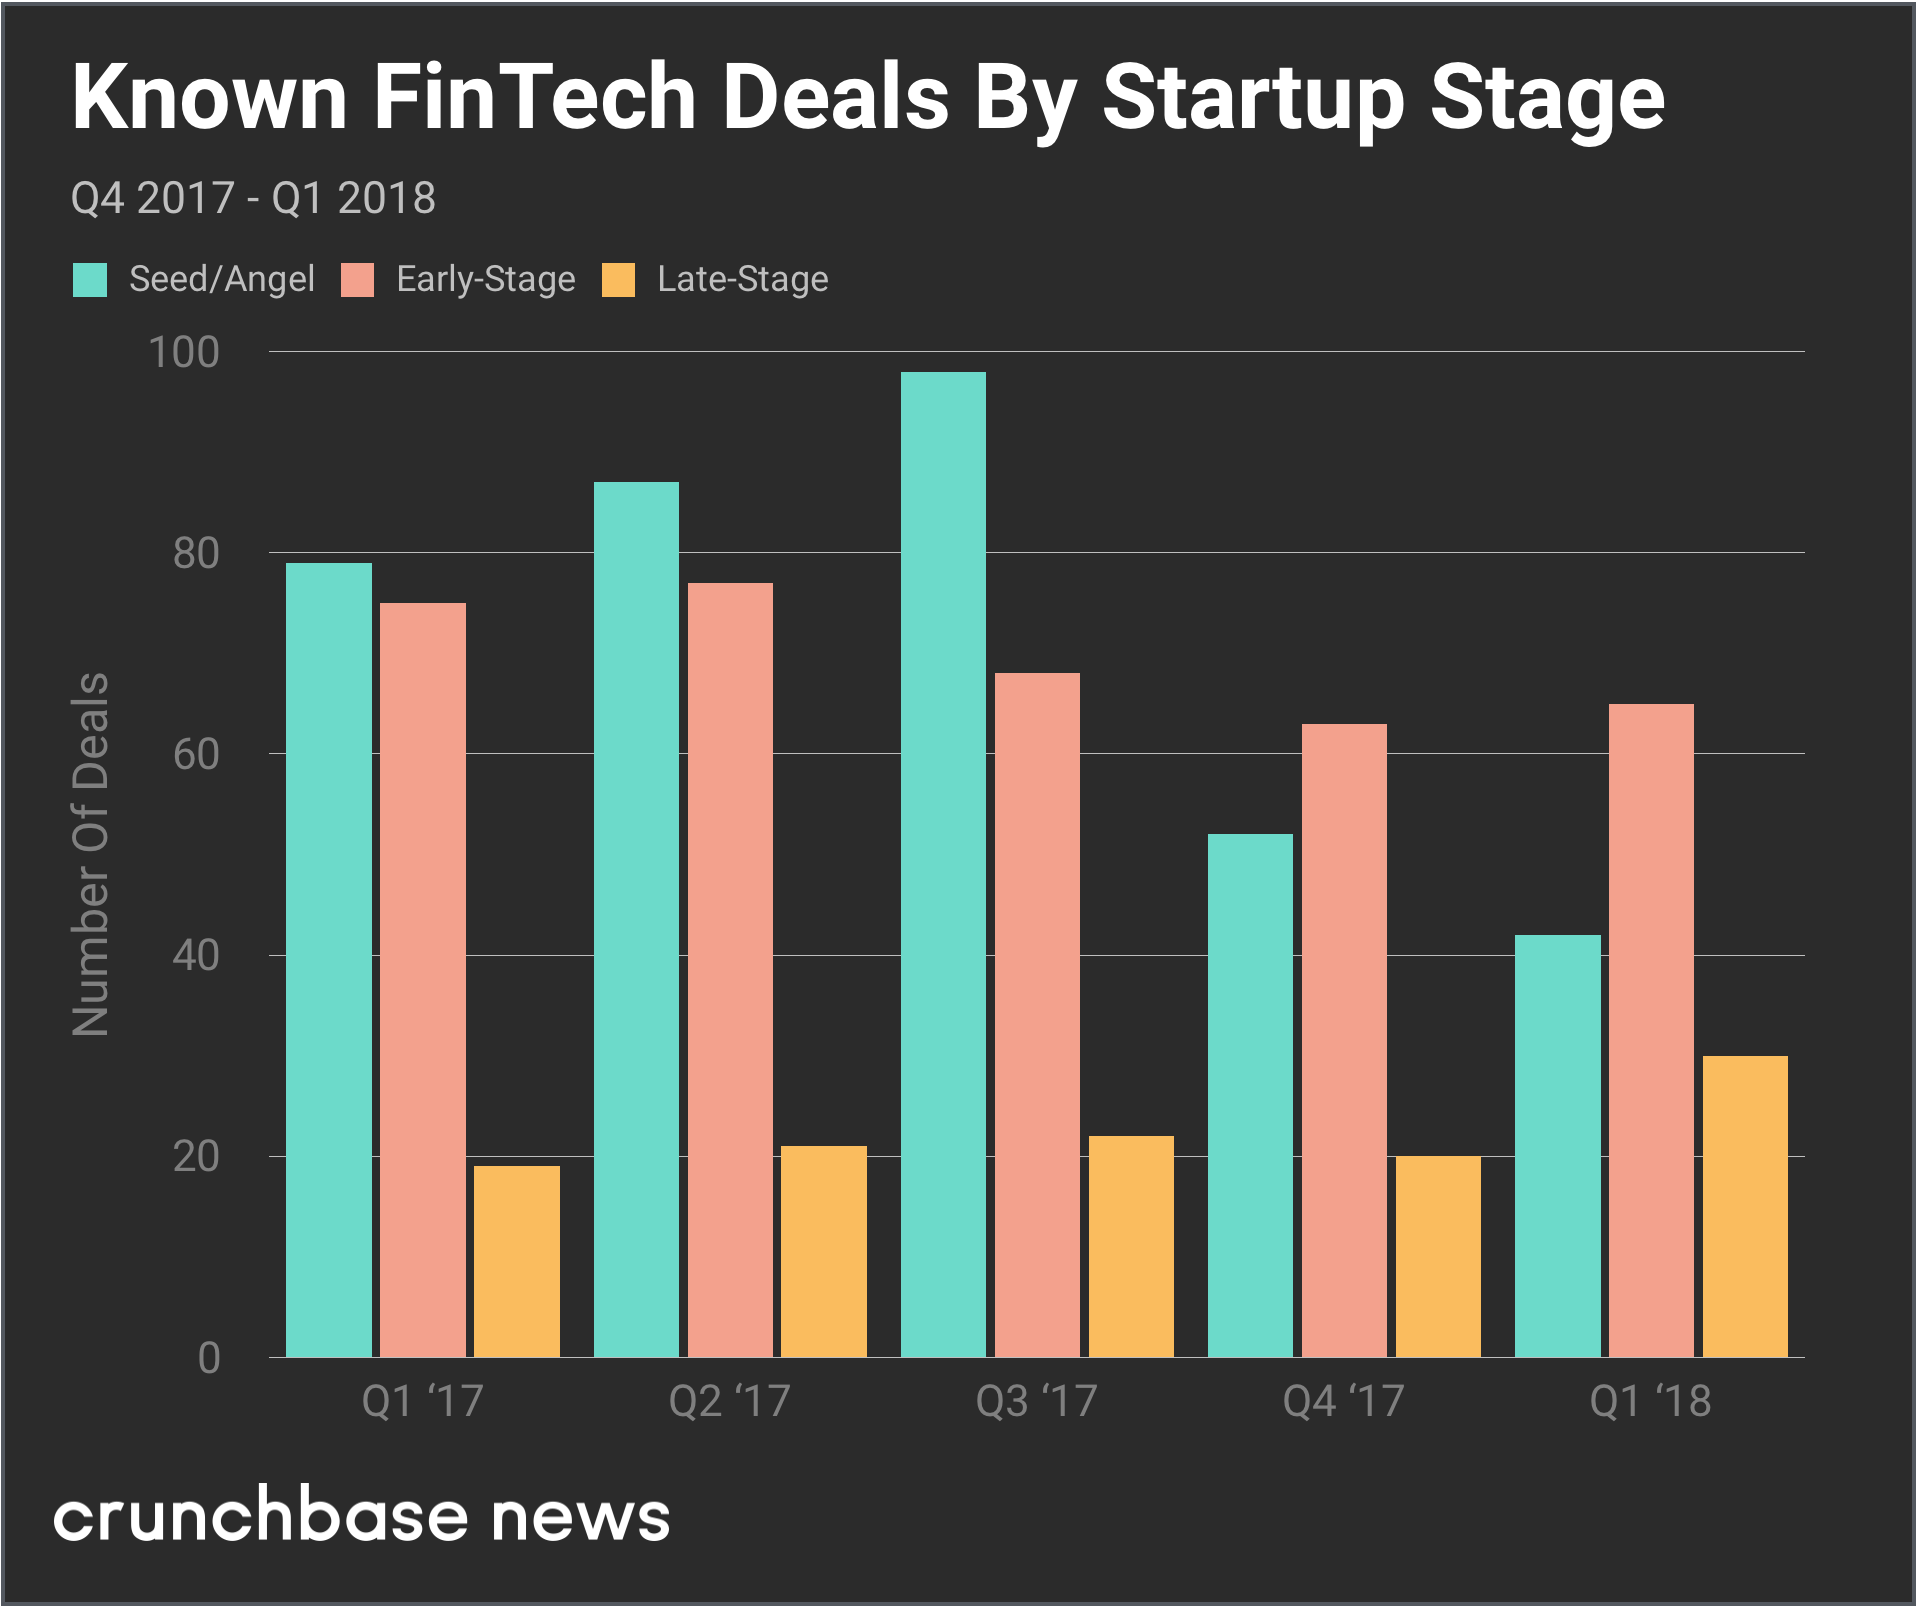 In Q1 2018, FinTech Startups Raise Record Amounts While Deal Counts Fall